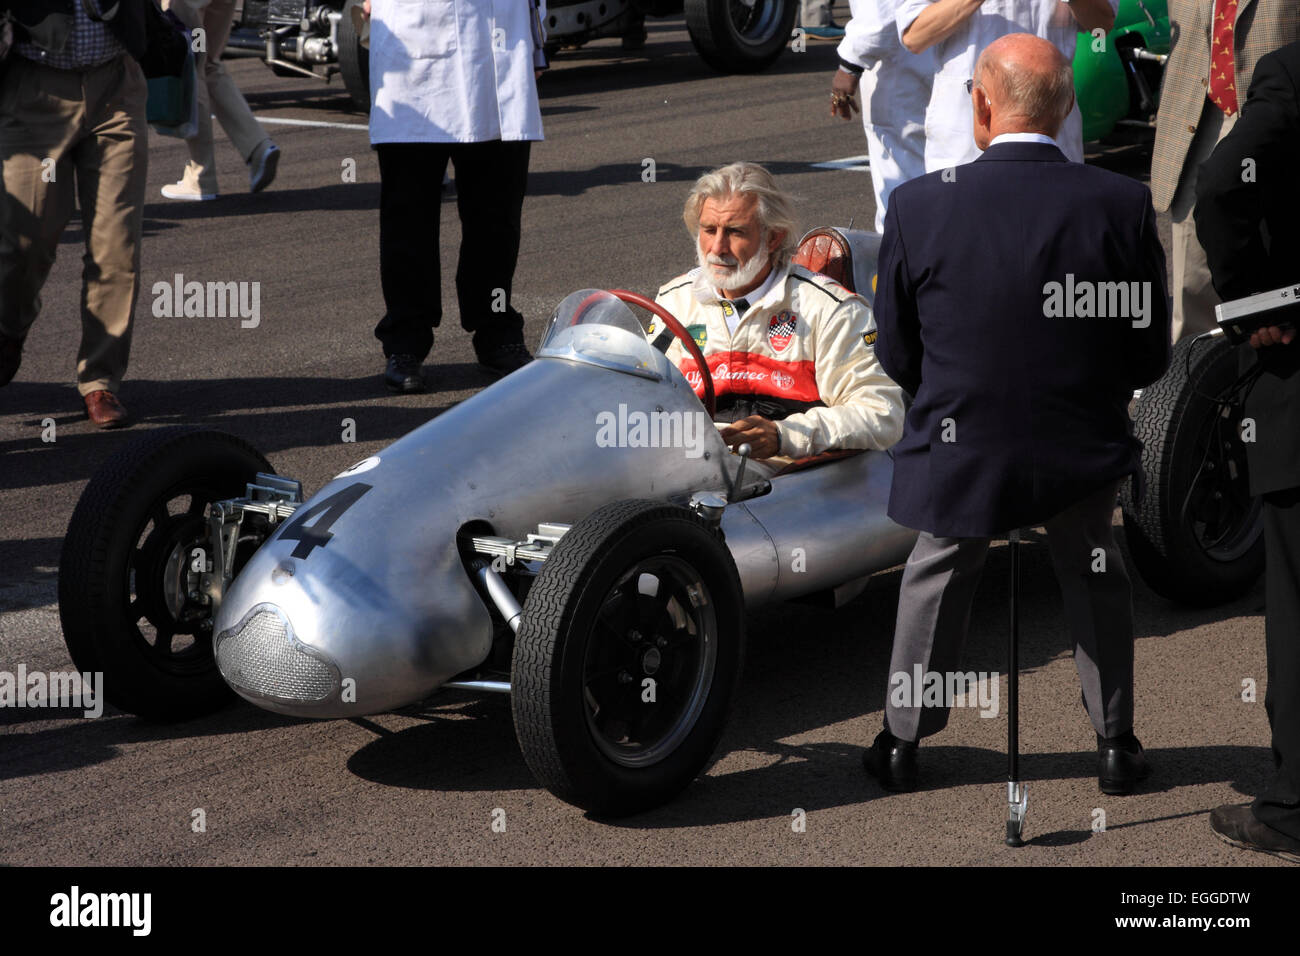 Sir Stirling Moss (back to camera) rests on his shooting stick on the grid for the Parade of Legends / Goodwood - Stock Image